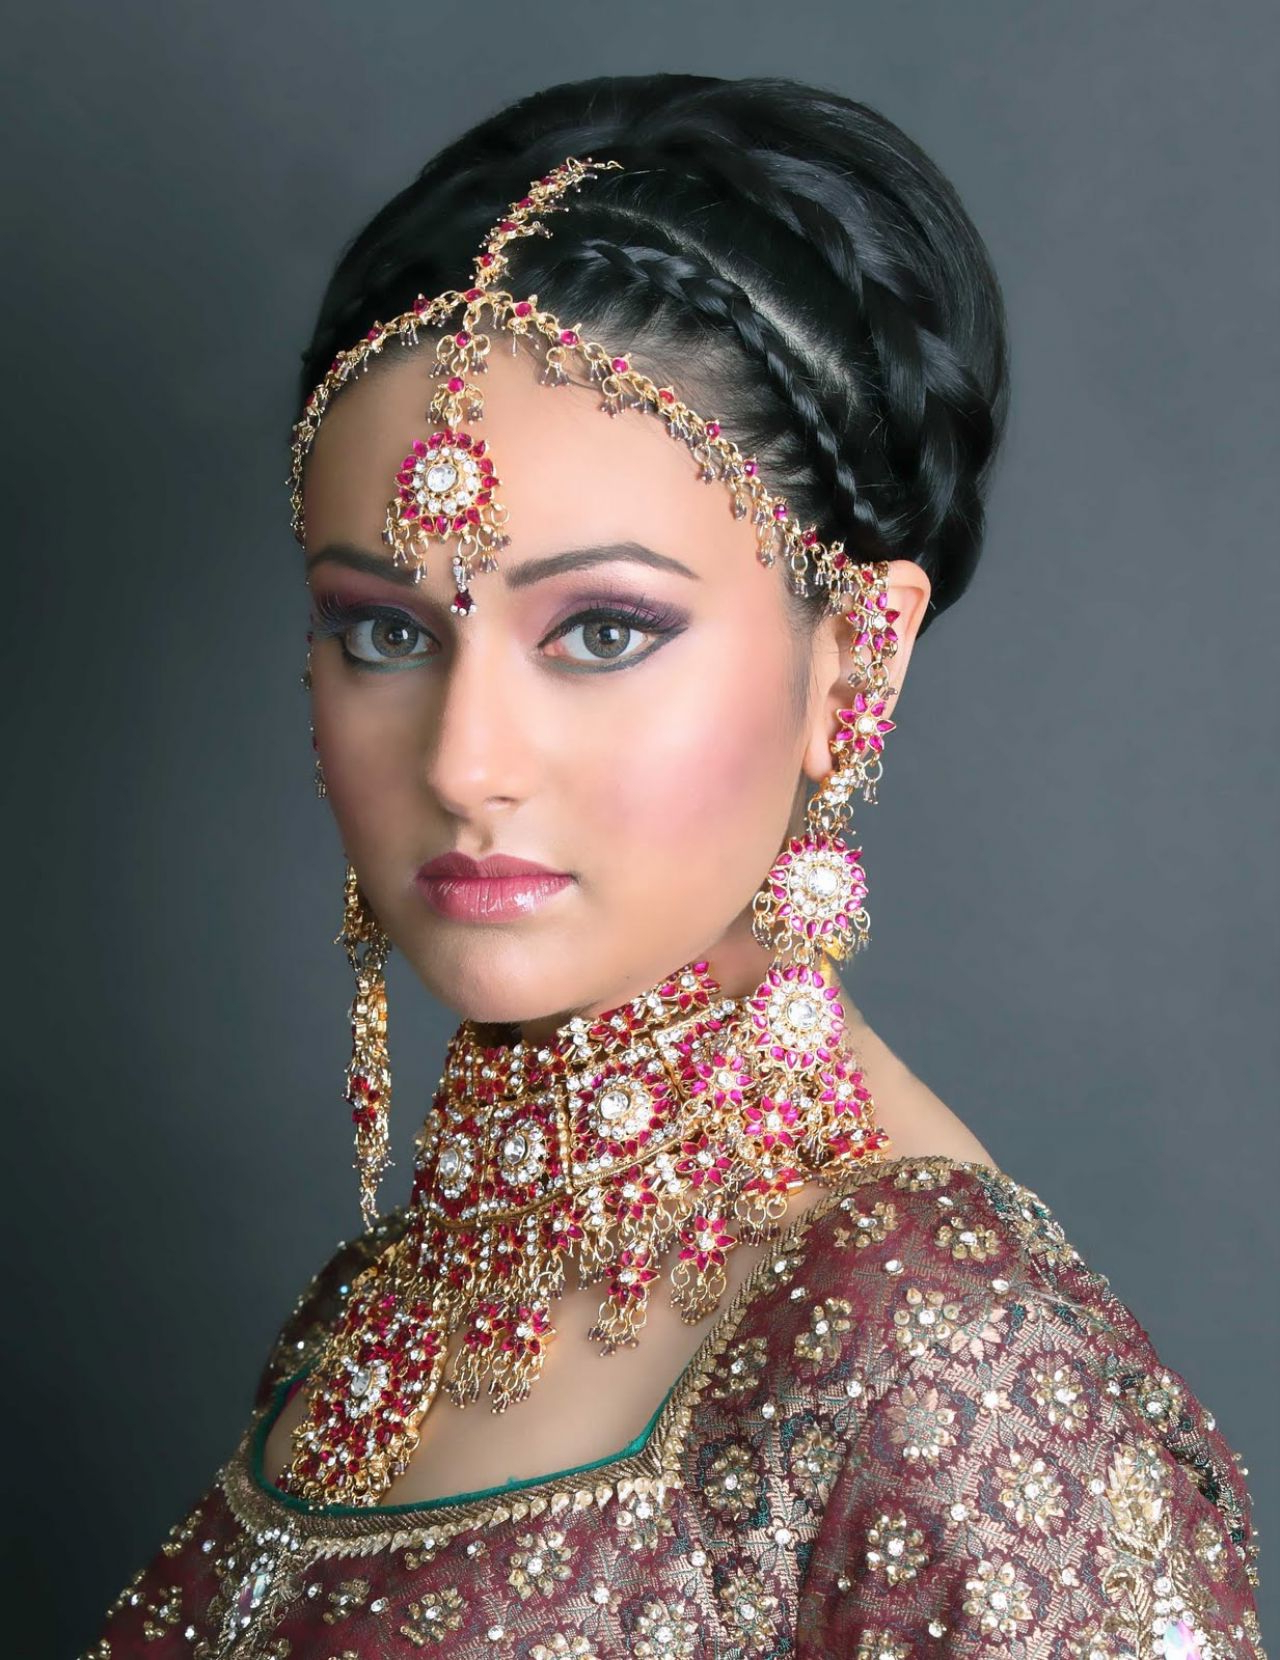 20 Indian Wedding Hairstyles Ideas – Wohh Wedding Within Famous Medium Hairstyles For Indian Wedding (View 17 of 20)